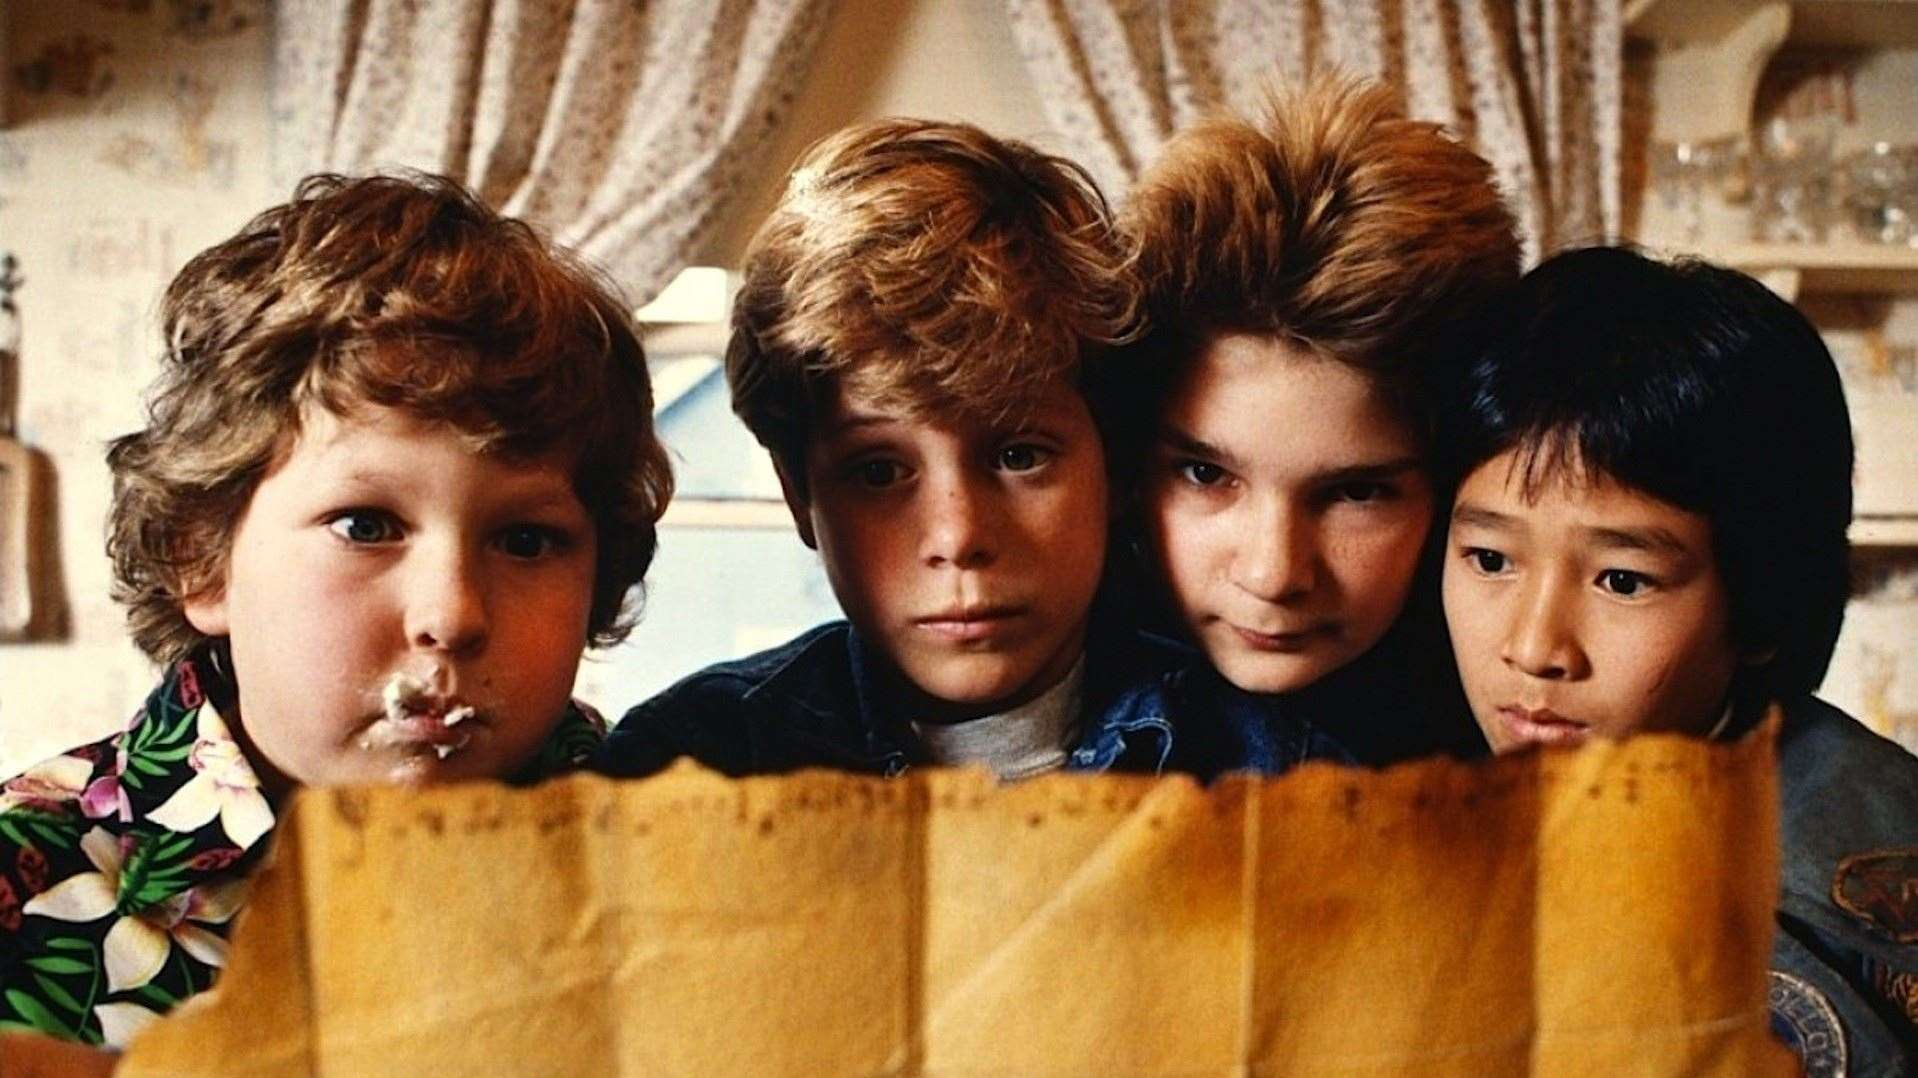 Eighties adventure The Goonies kicks things off Picture: Warner Bros.